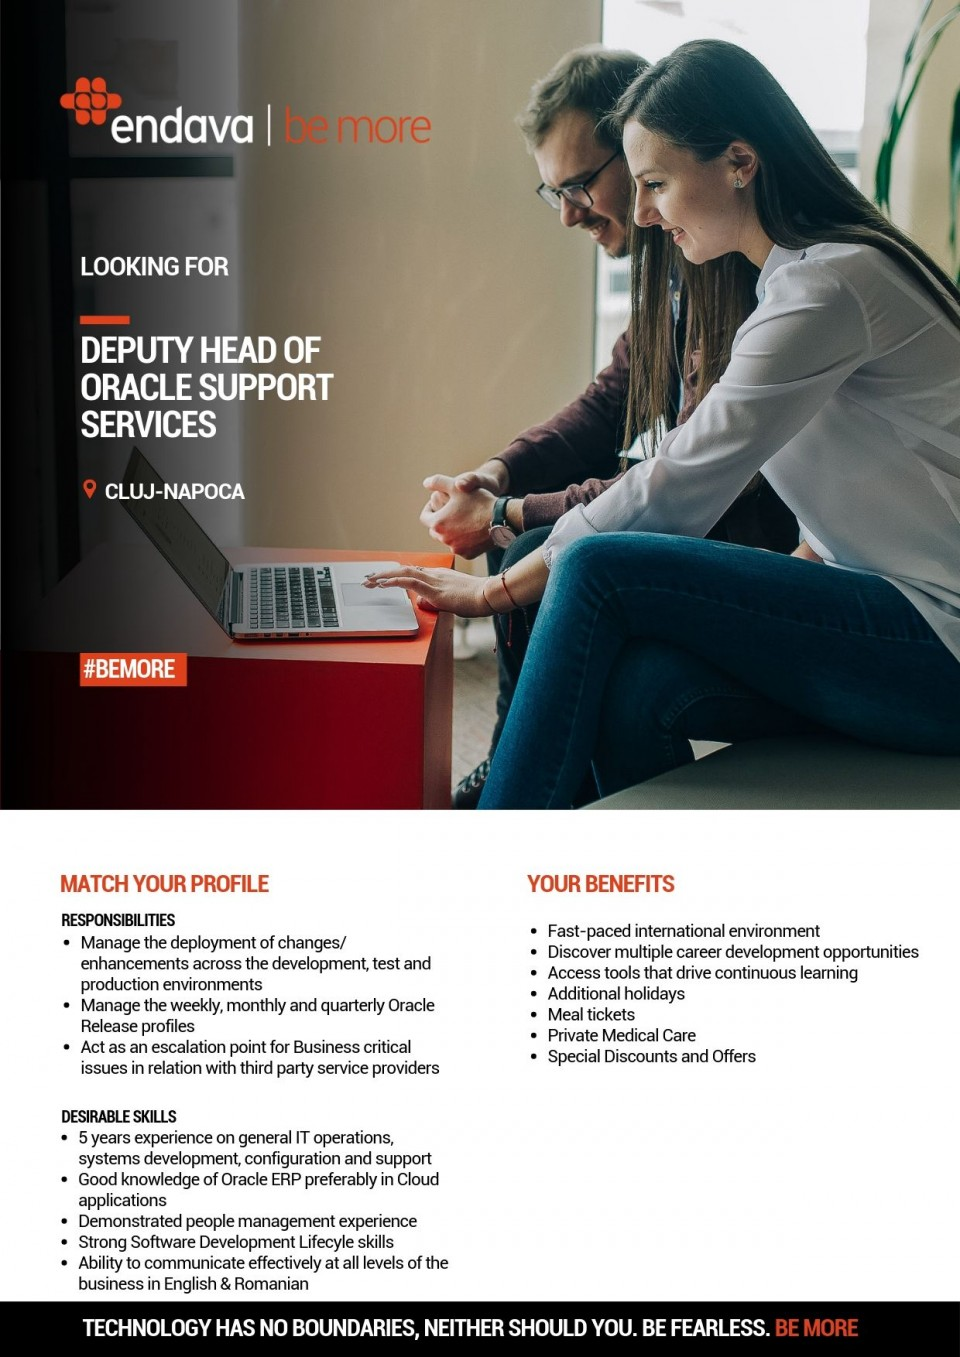 Minimum 5 years experience on general IT operations and systems development, configuration and support